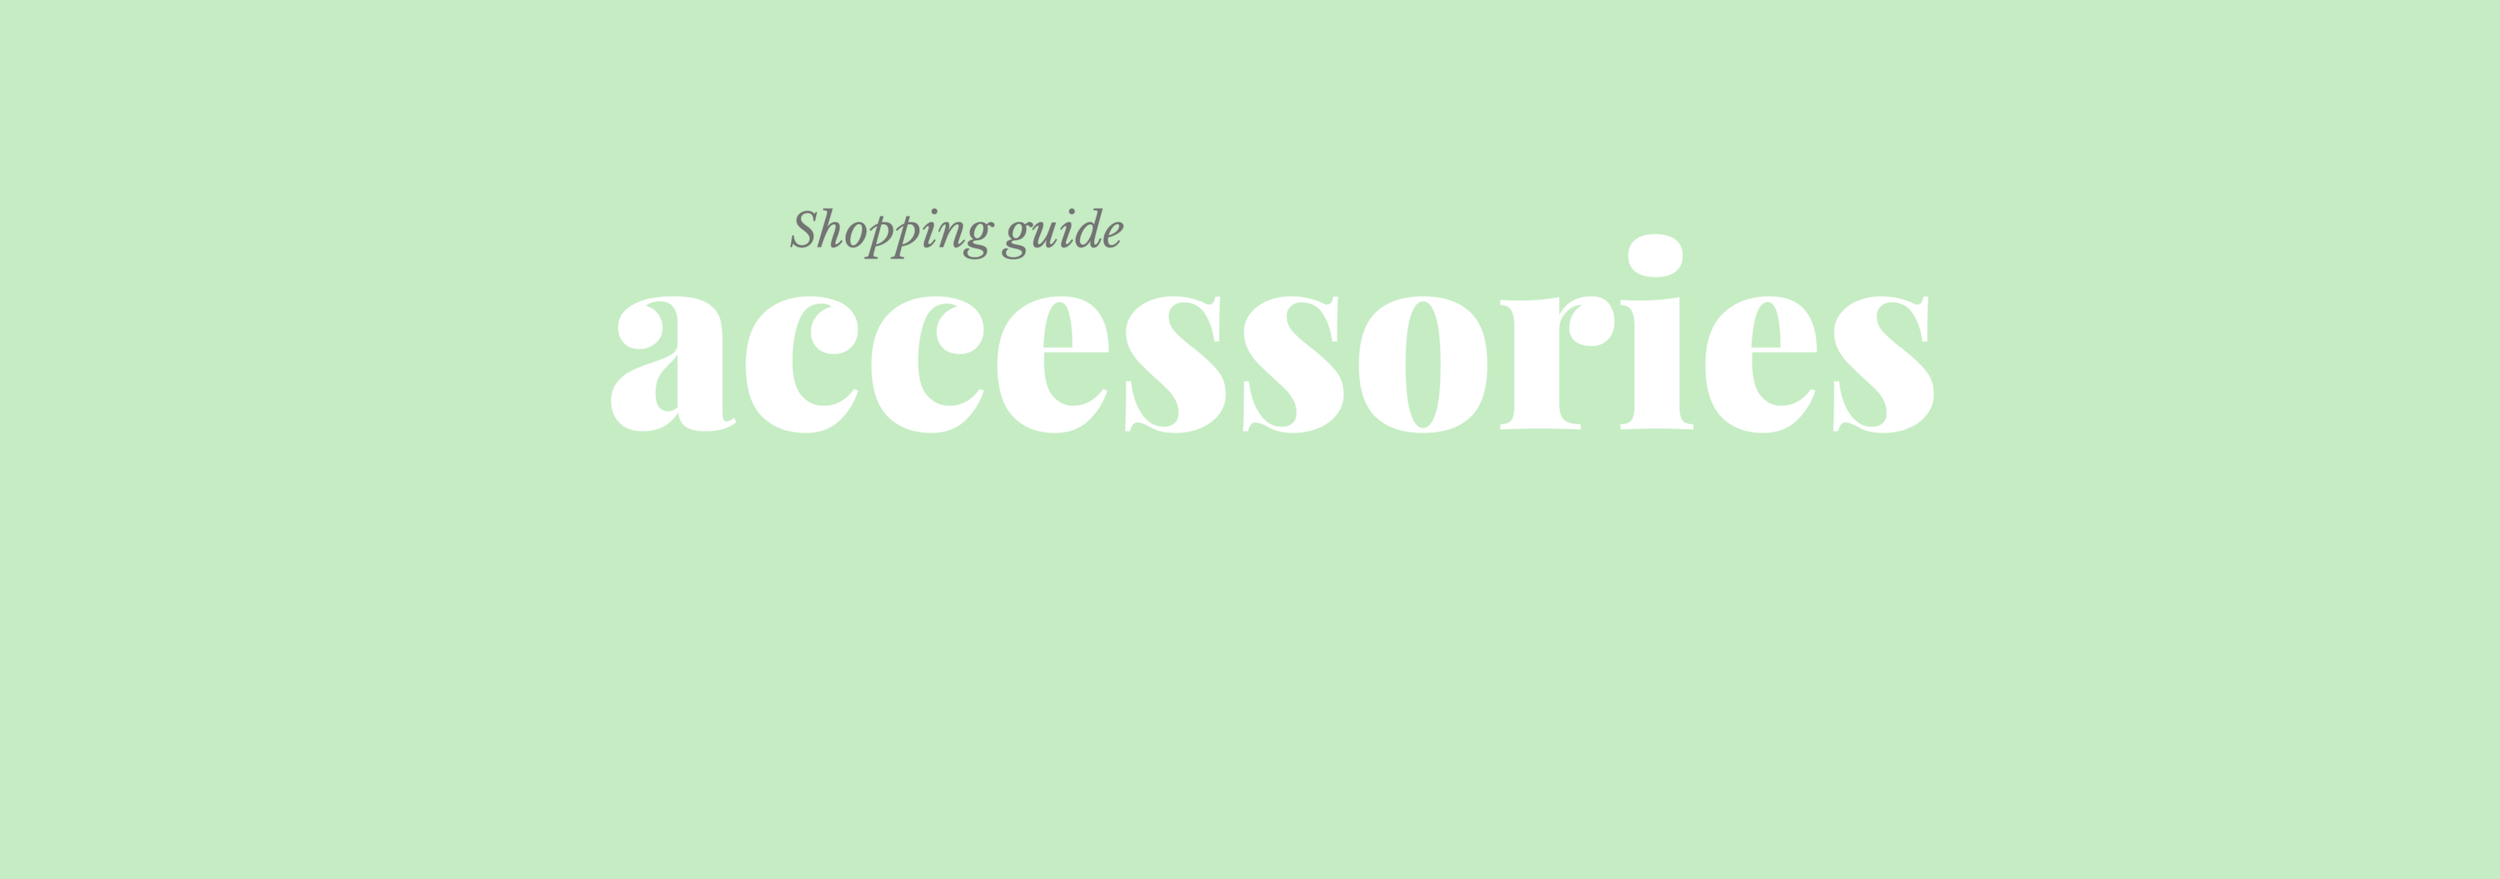 Shopping guide accesories.png